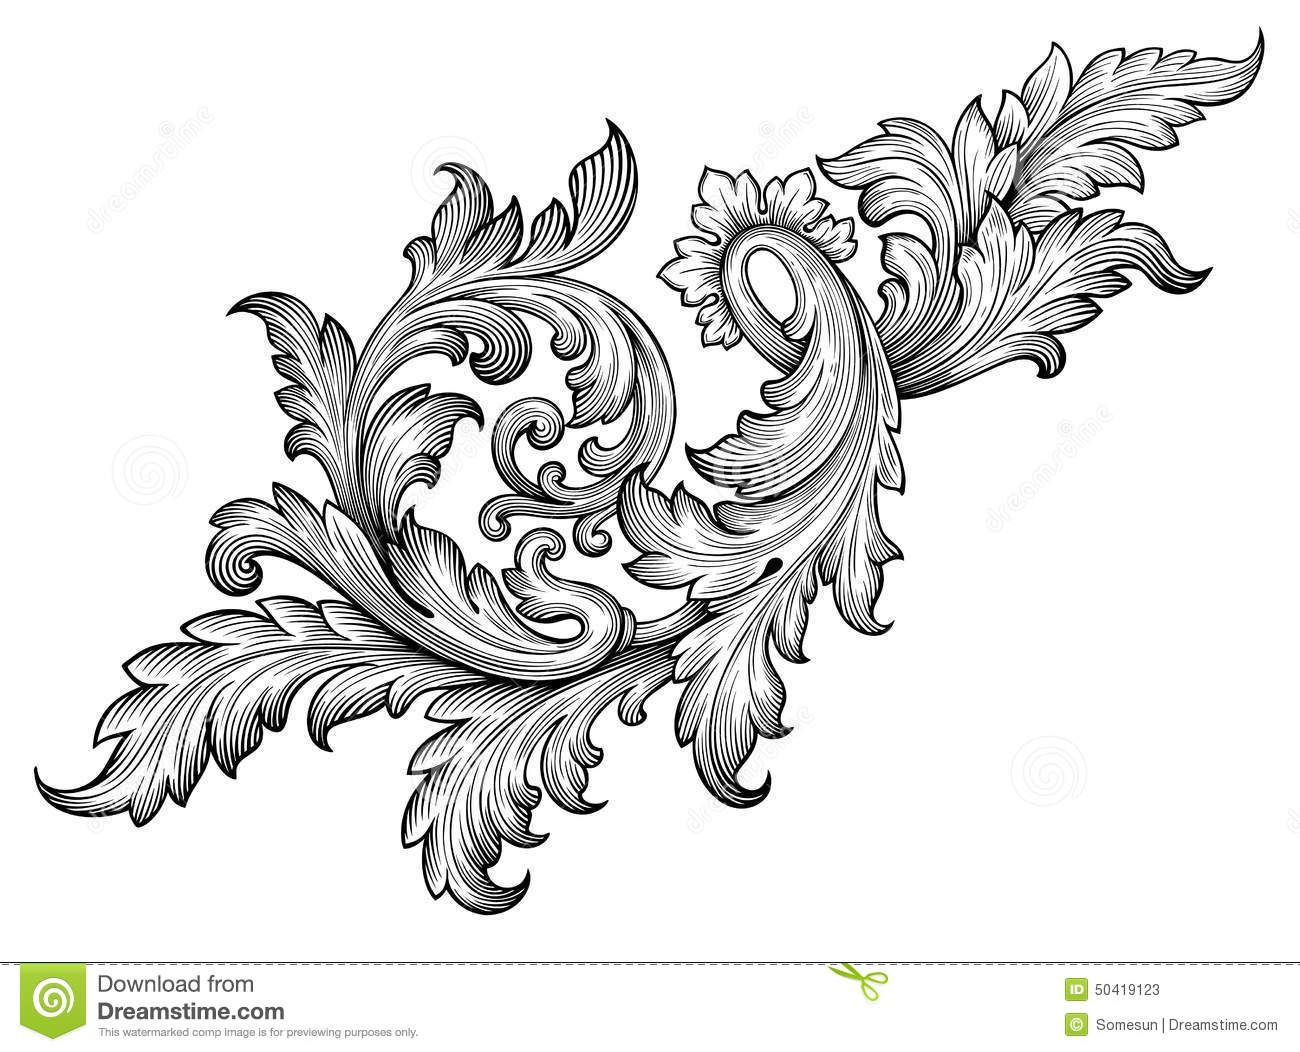 vintage-baroque-frame-scroll-ornament-vector-leaf-floral-engraving-border-retro-pattern-antique-style-swirl-decorative-design-50419123.jpg 1.300×1.052 pixels